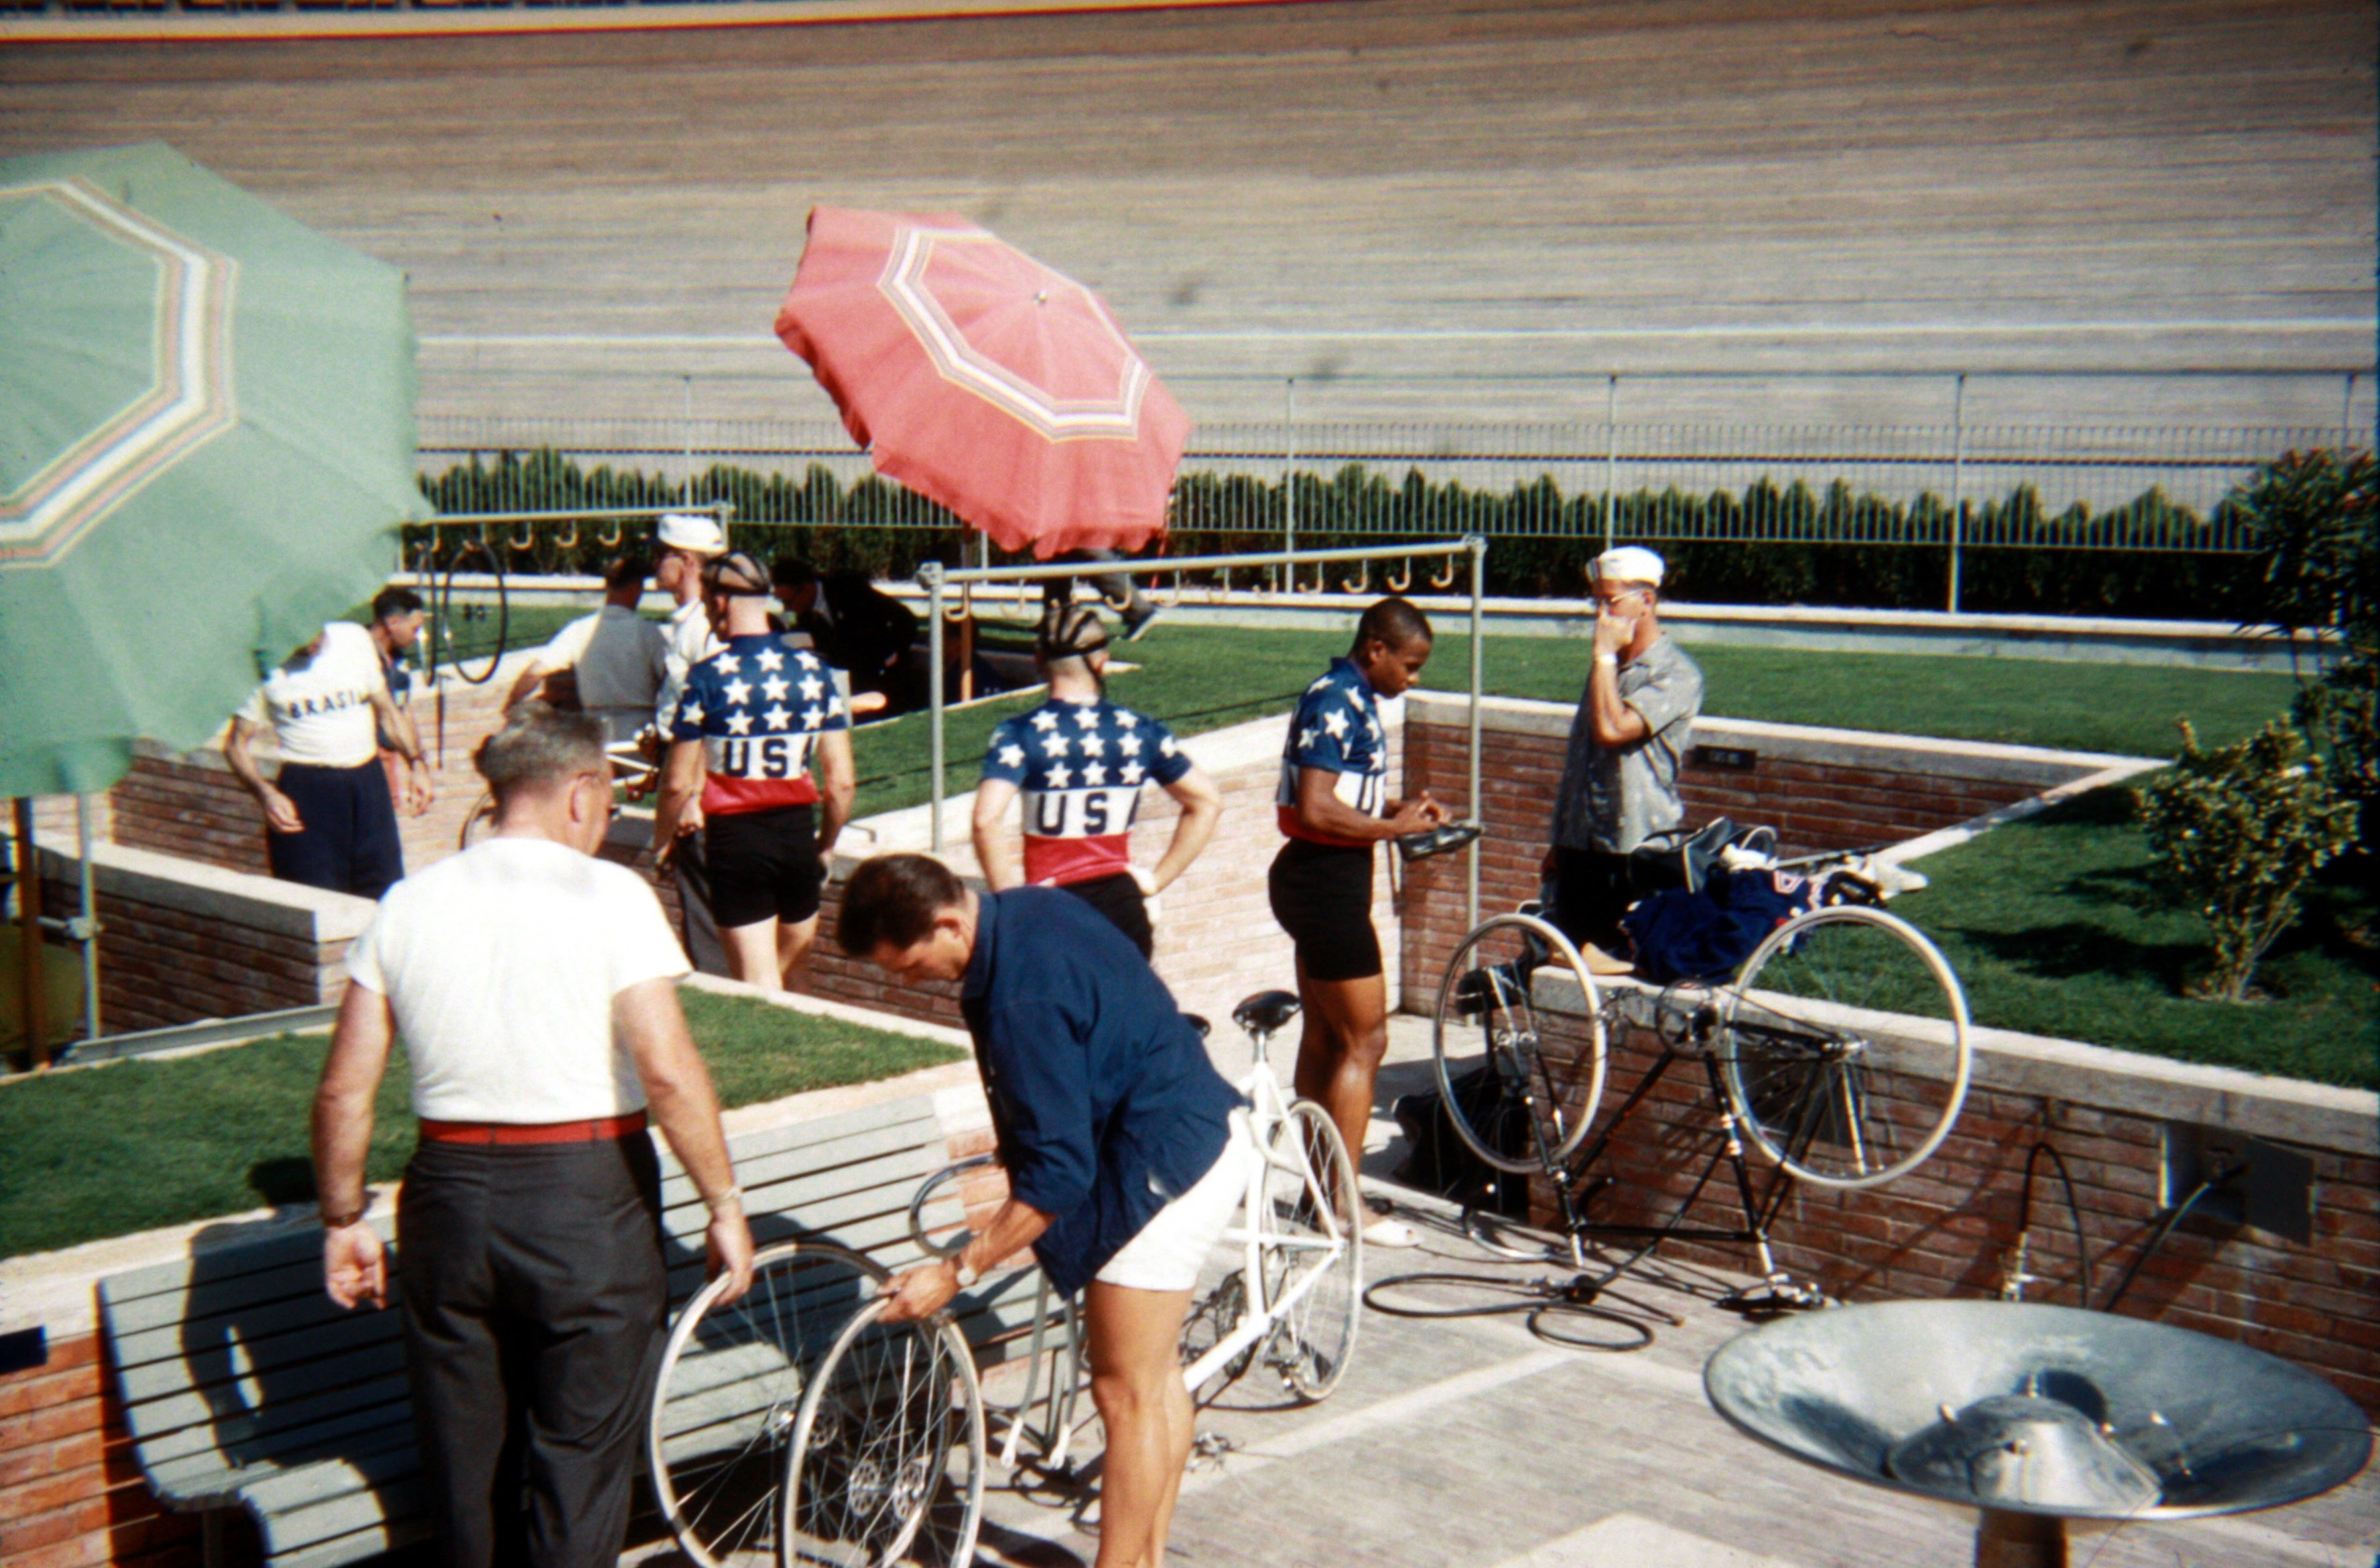 Team USA. The riders from left are the tandem sprint pairing of David Sharp and Jack Hartman and individual sprinter, Herbie Francis. (Photo: © Sean B. Fox)